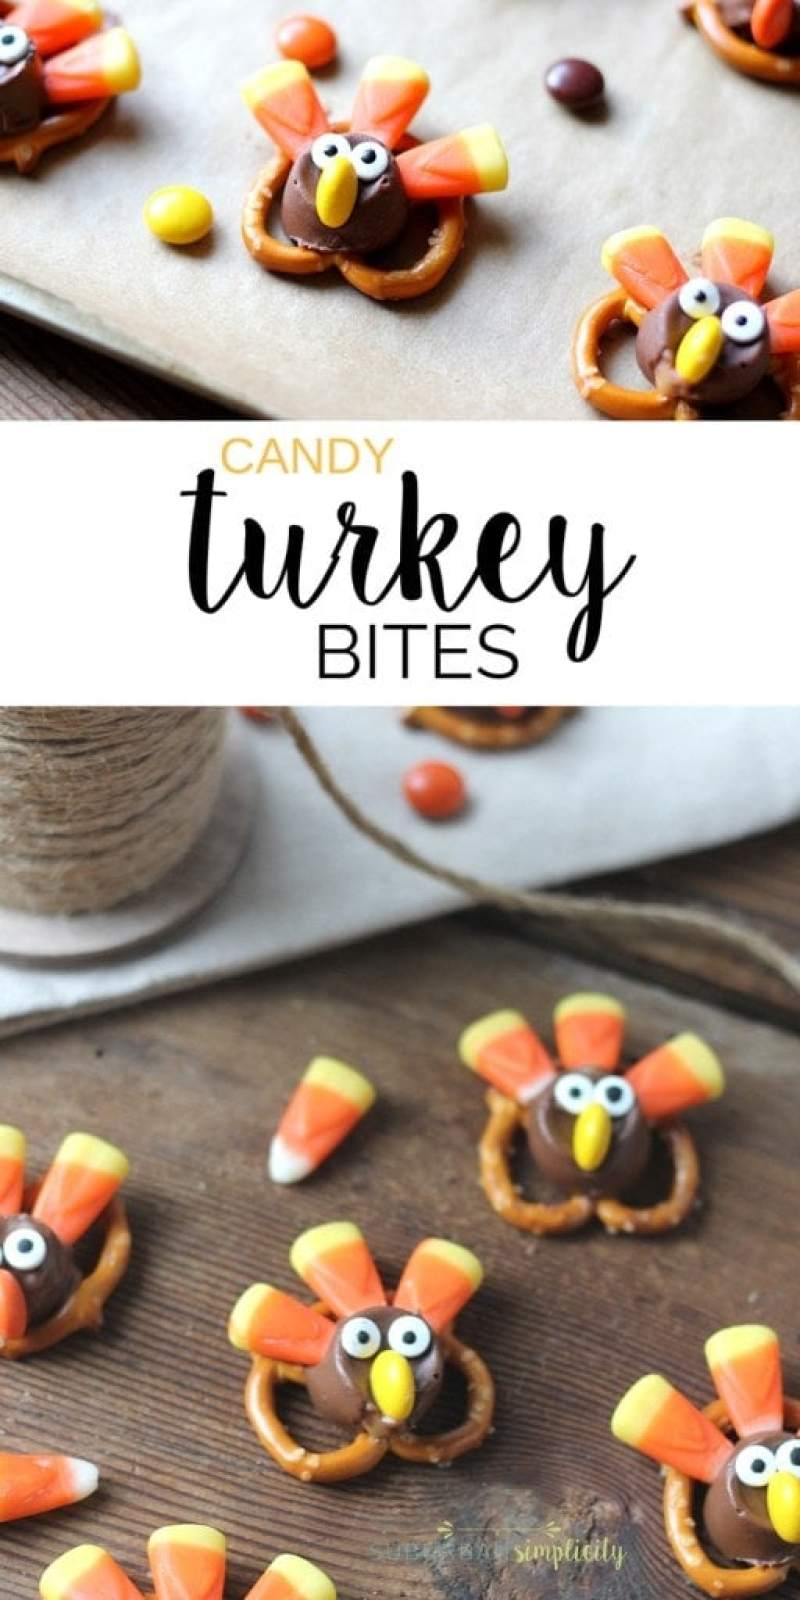 Thrive at Five Meal Plan - Thanksgiving Edition ~ A weekly meal plan for busy moms. This week's meal plan features easy, delicious recipes to make your Thanksgiving meal and week a breeze.